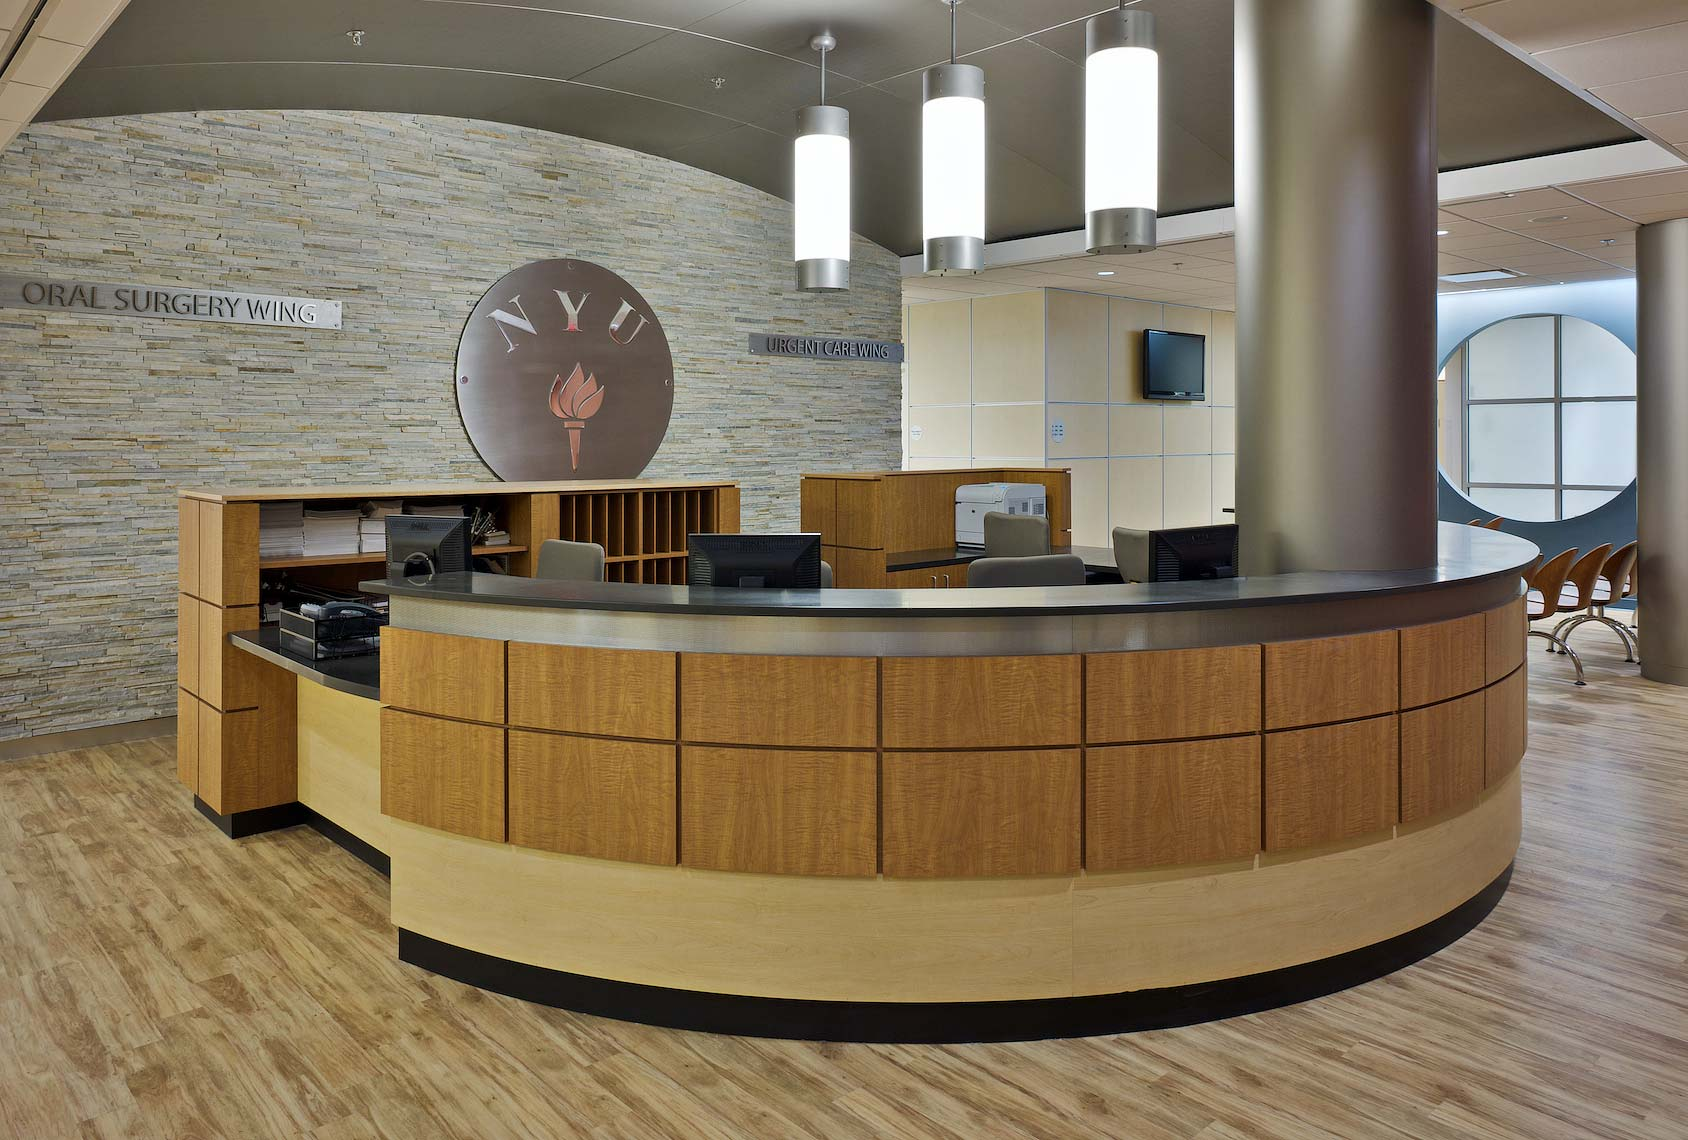 NYU Dental School -Urgent Care Wing - Reception Area